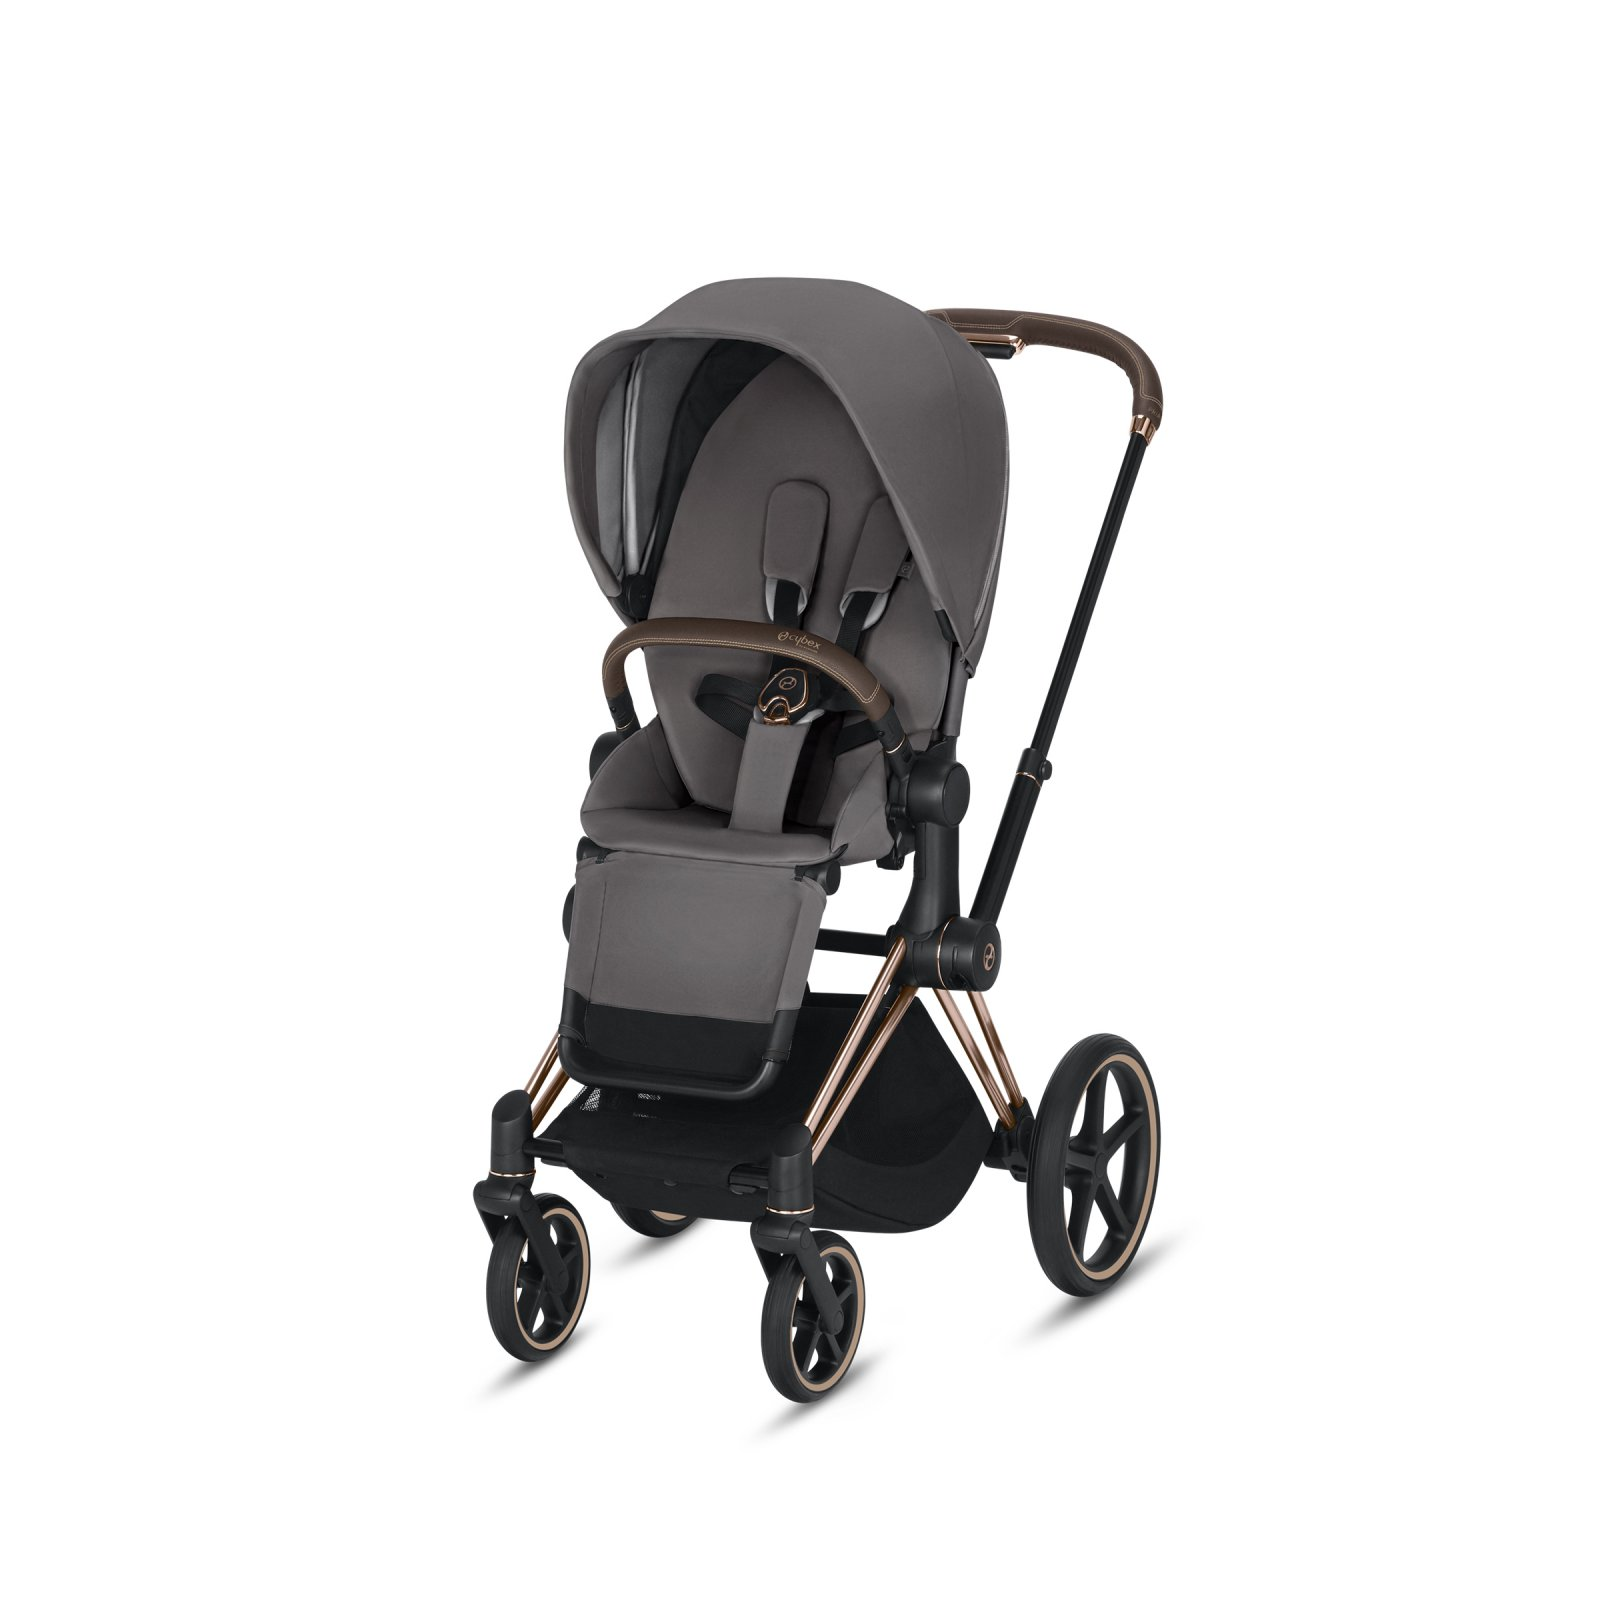 Cybex Priam Rose Gold Frame with Manhattan Grey Seat Pack